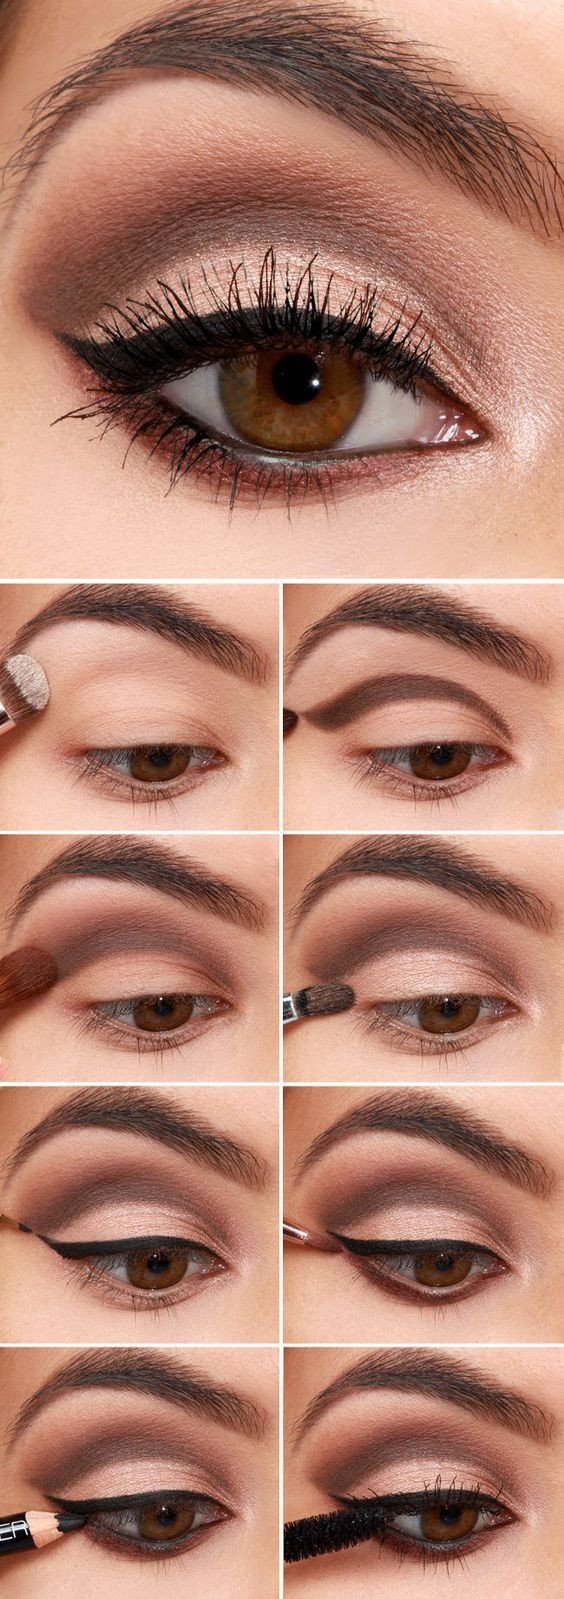 32 Easy Step by Step Eye shadow Tutorials for Beginners - Family Deals